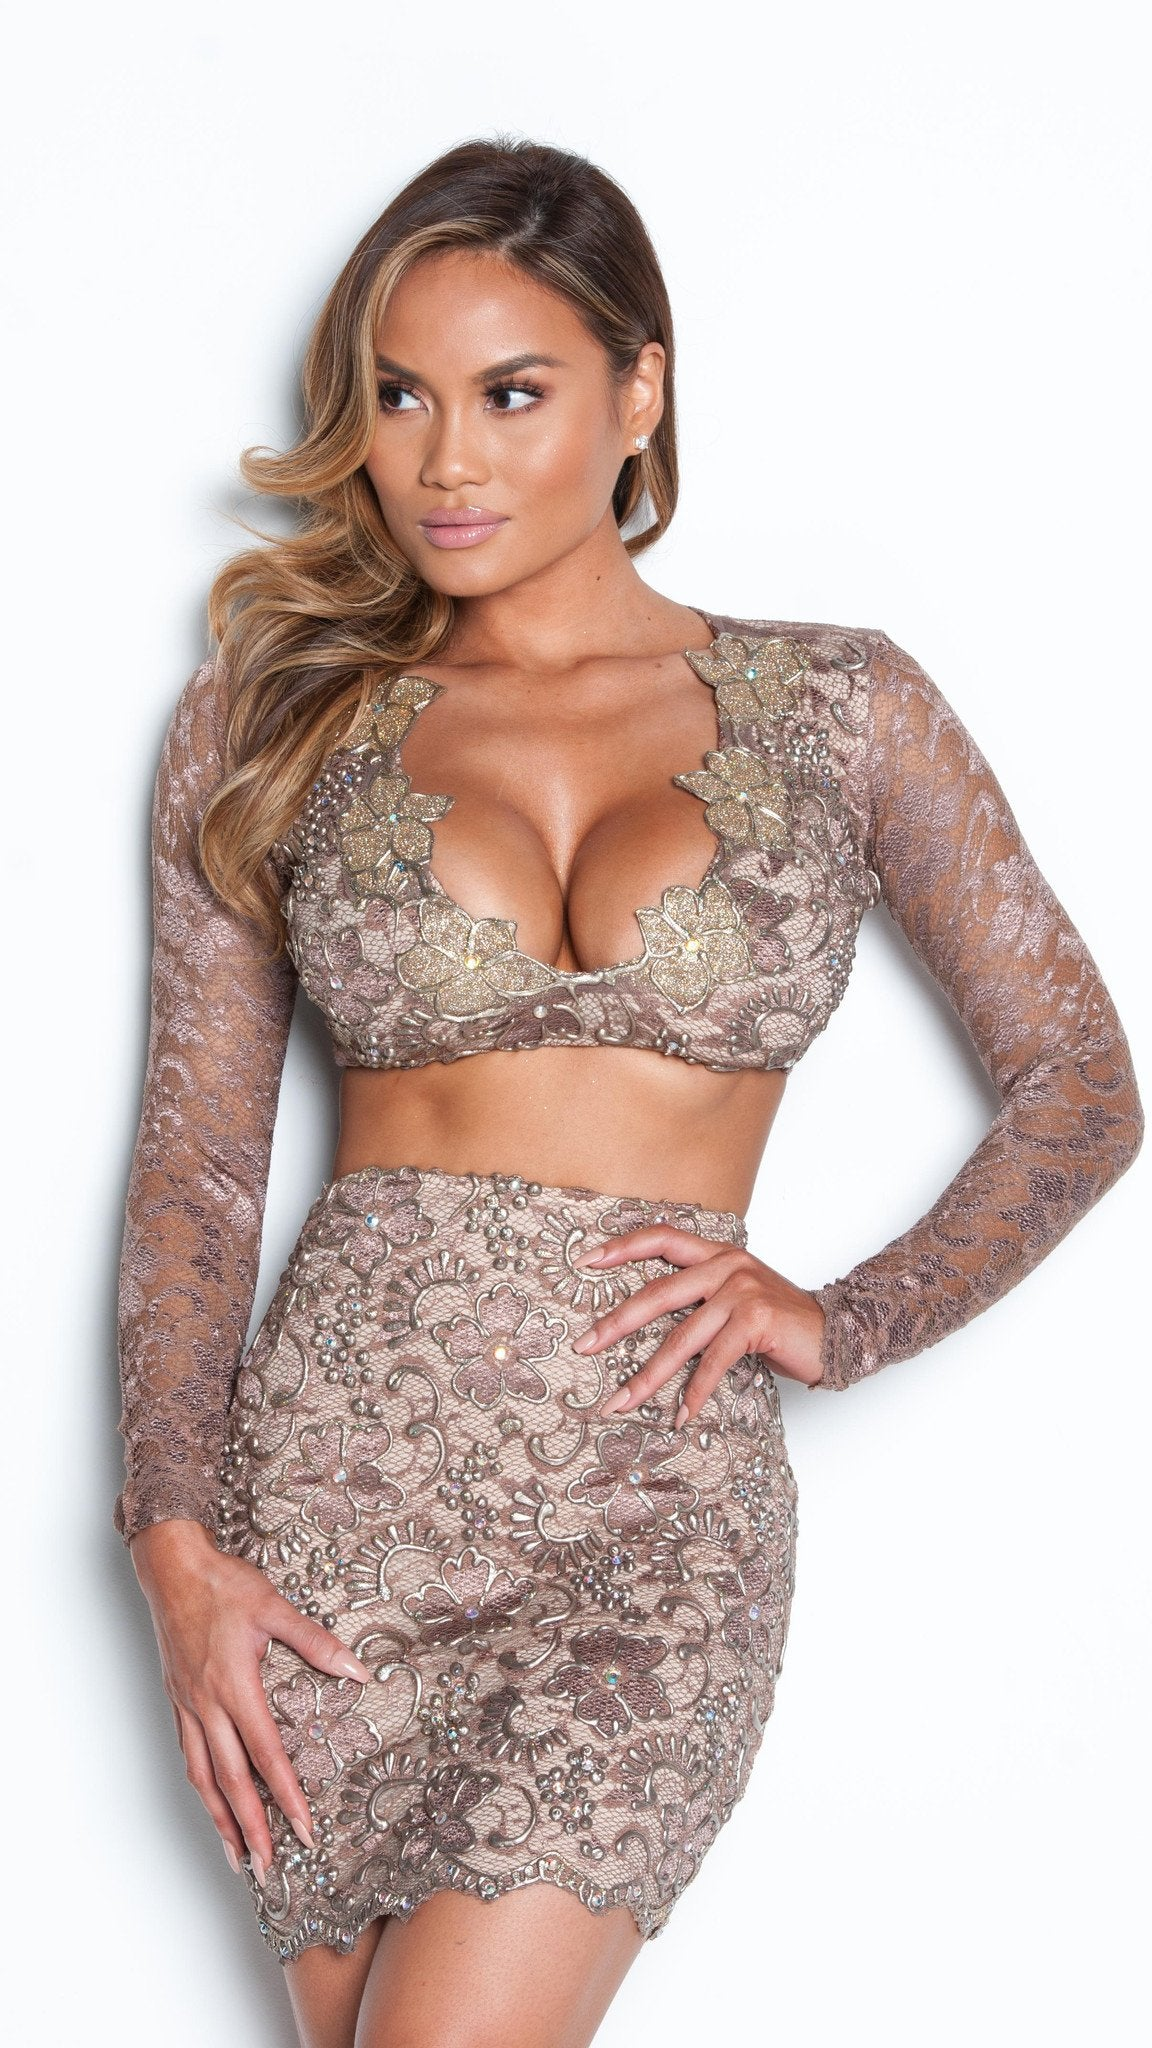 MELI TWO PIECE DRESS LACE SET IN TAUPE